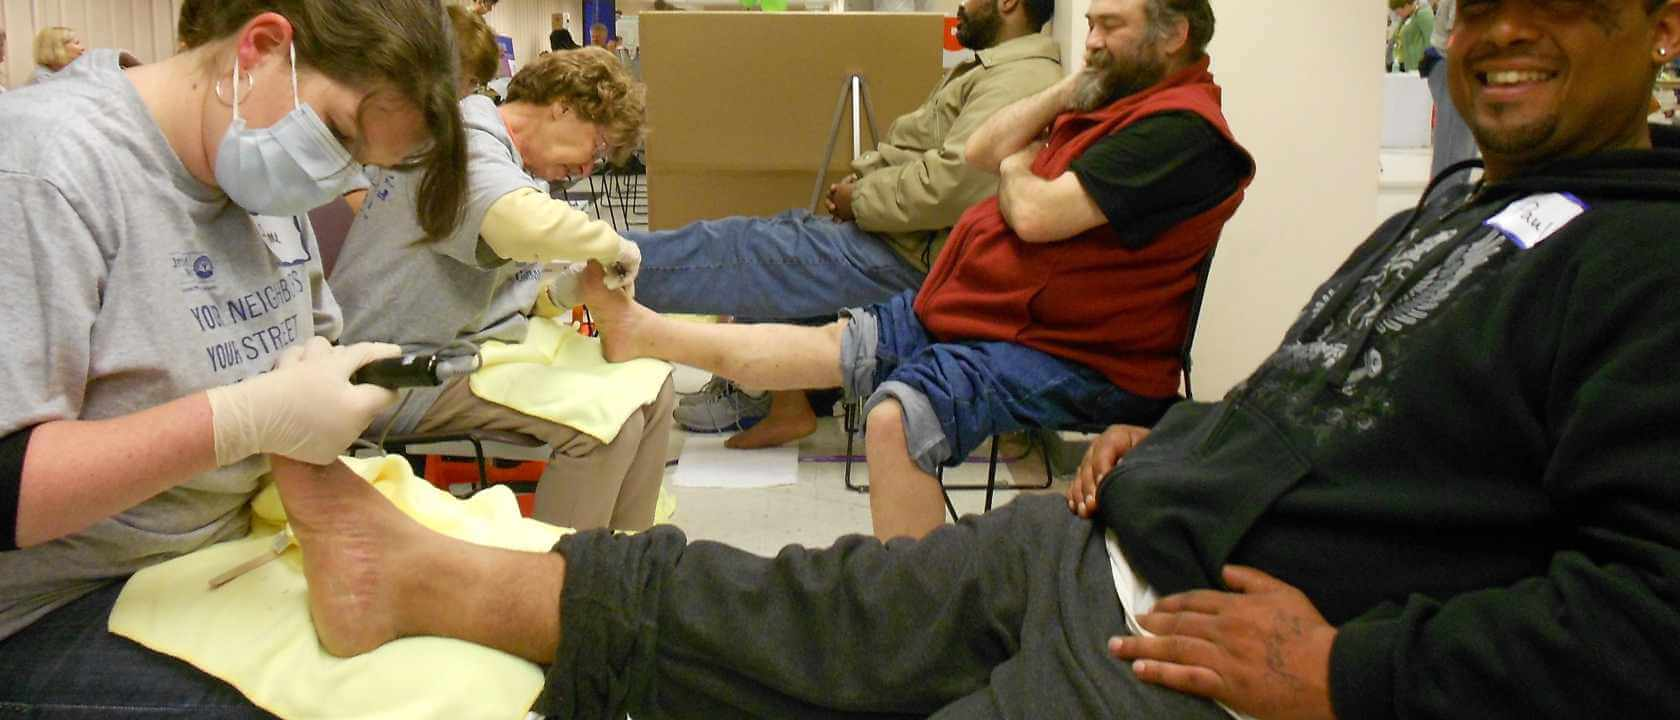 Advanced footcare while washing feet of those experiencing homelessness